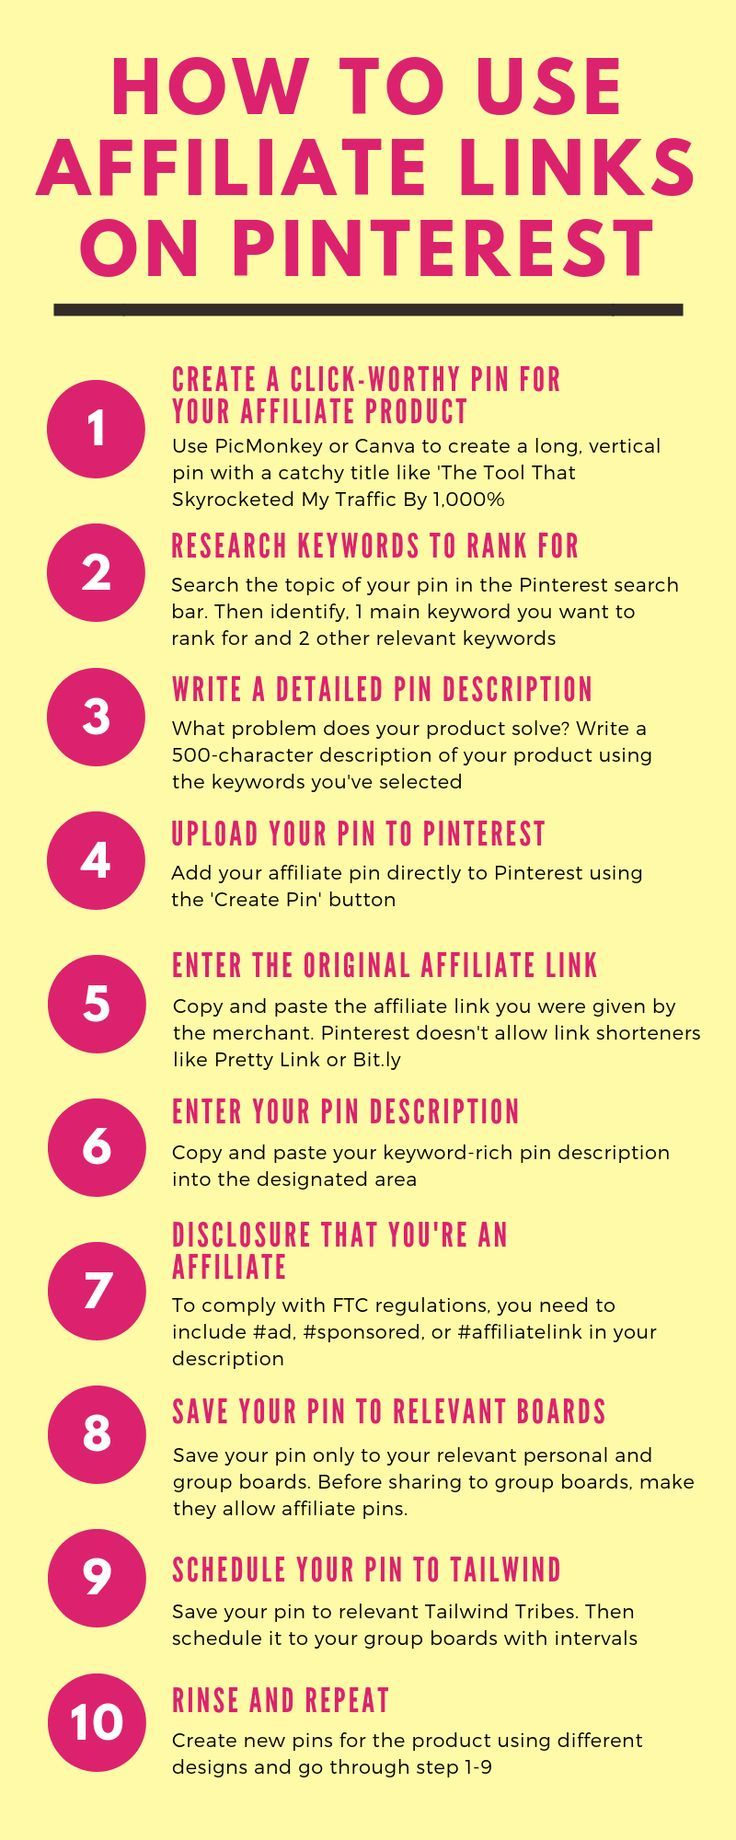 How To Make Money on Pinterest With Affiliate Links in 2019